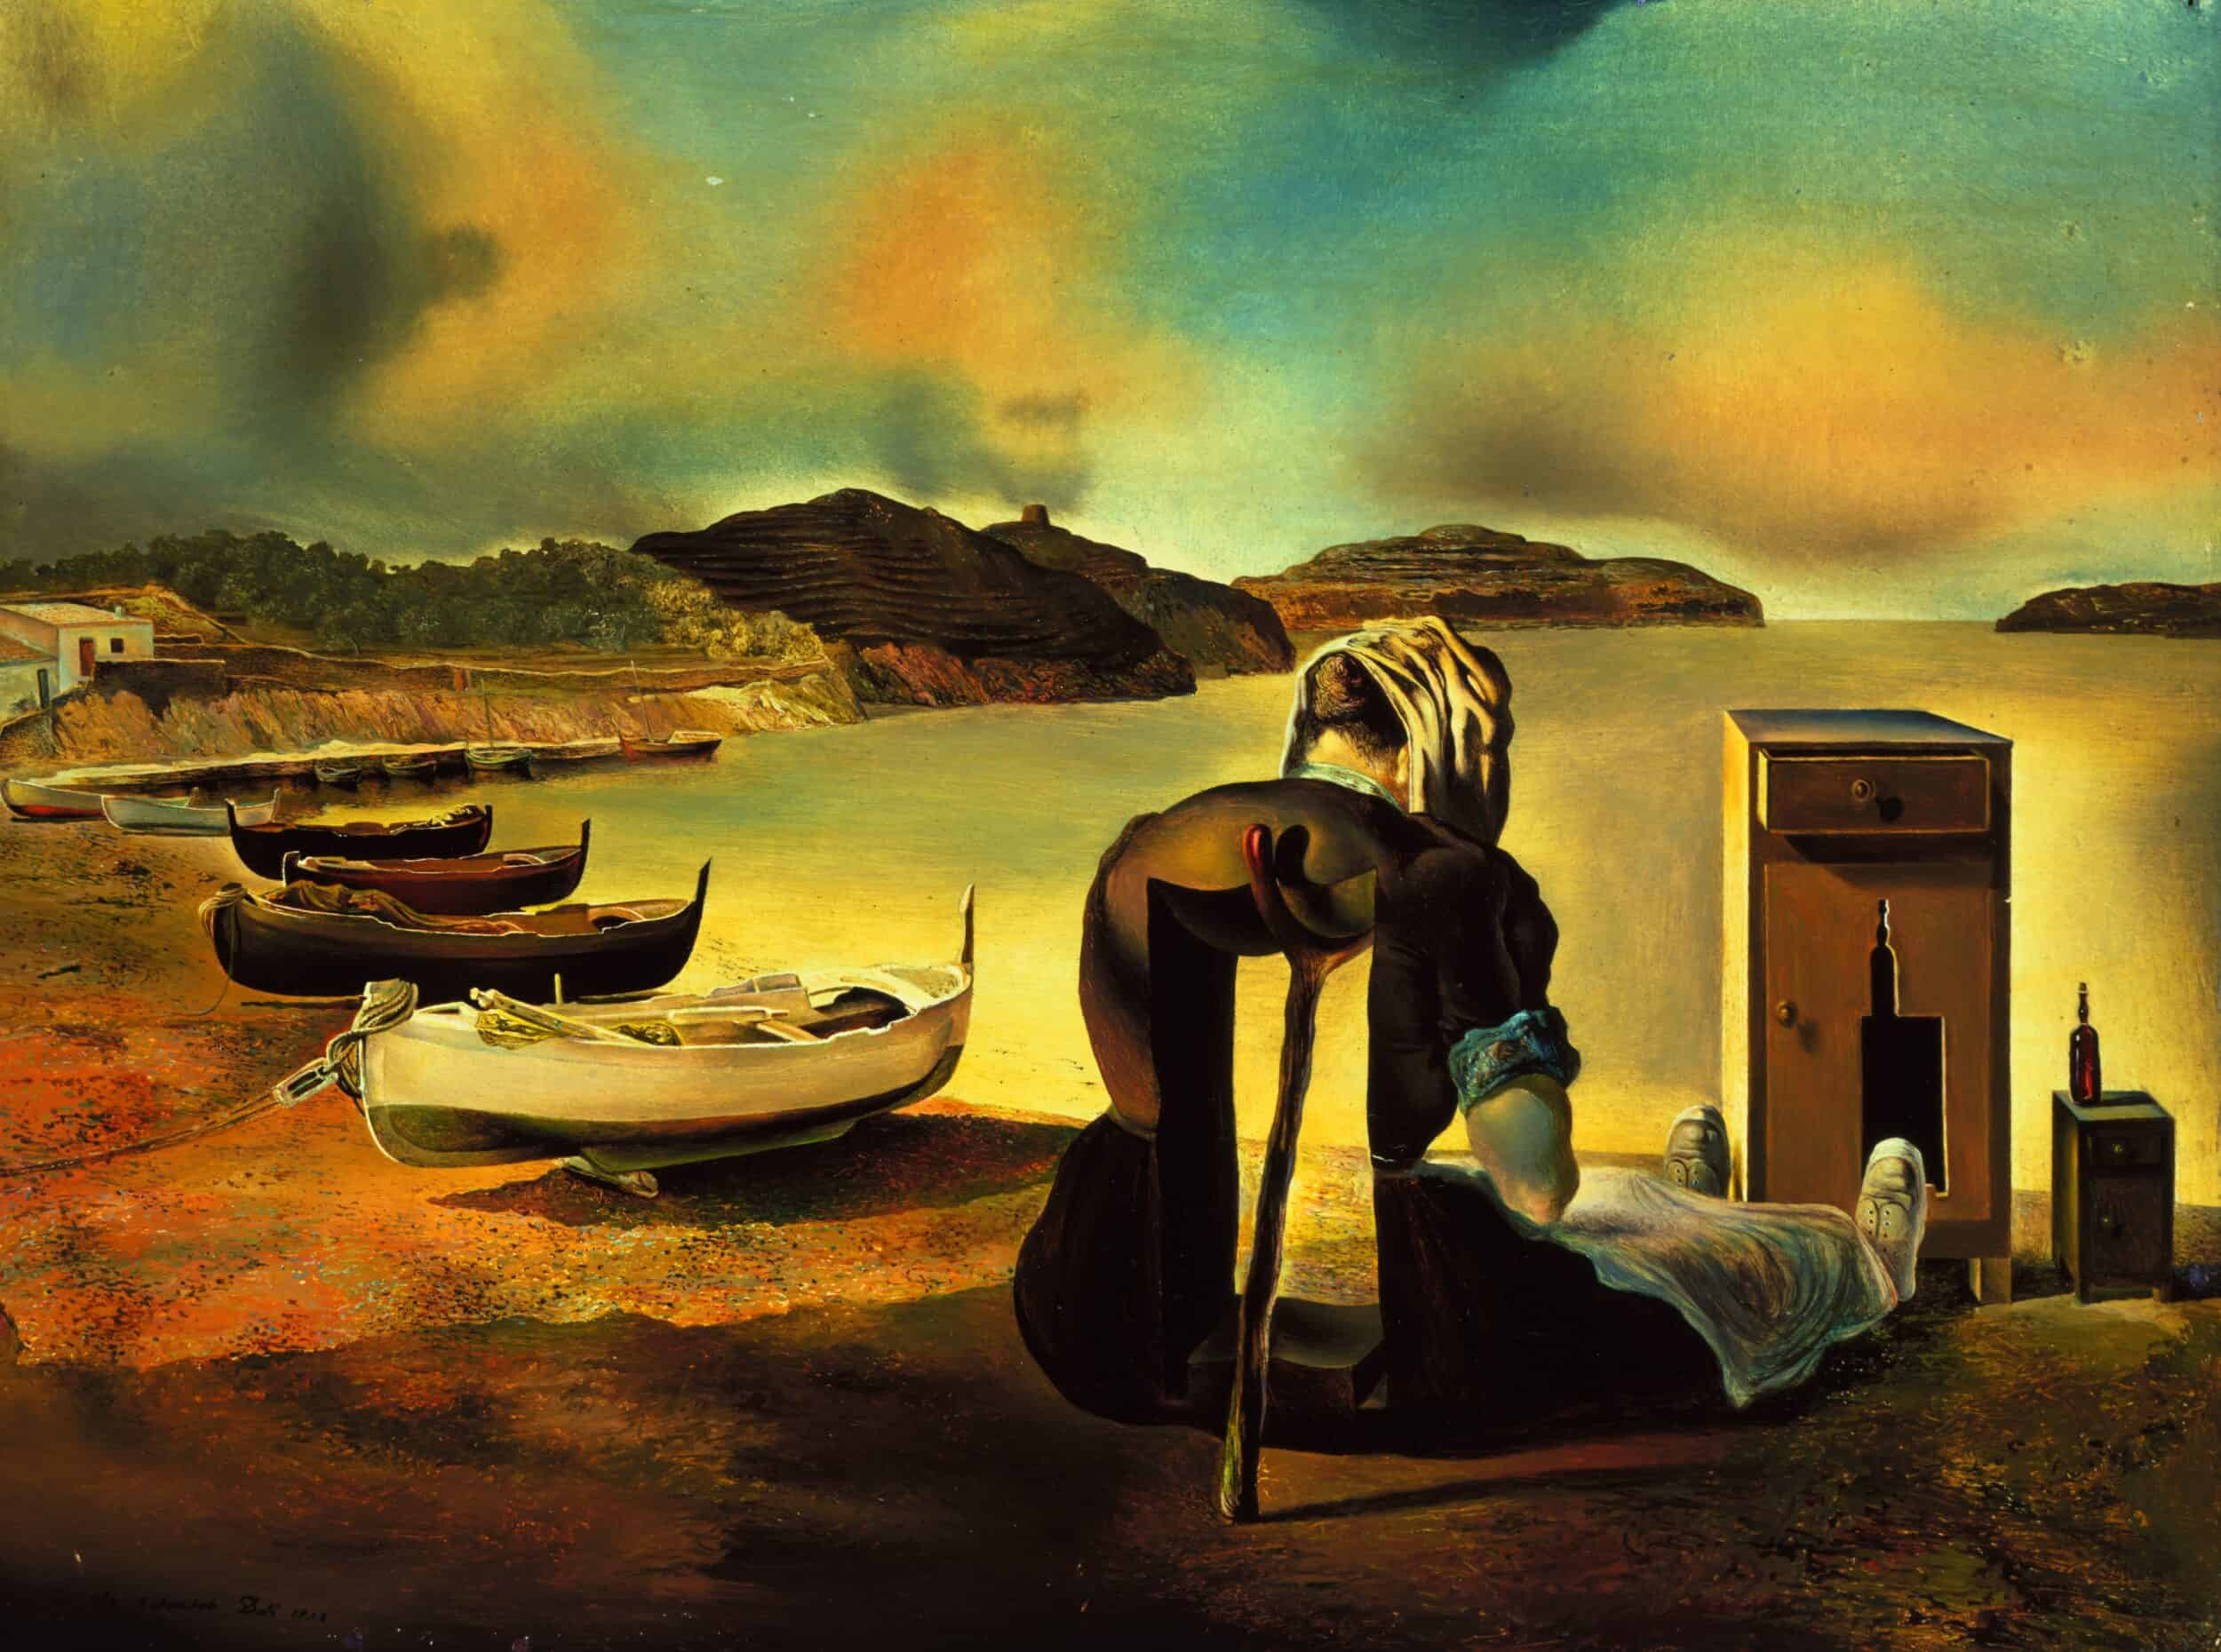 Salvador DALÍ El desnonament del moble aliment (The Eviction of Furniture-Nutrition) The Weaning of Furniture-Nutrition Le Sevrage Du Meuble Aliment Het spenen van het voedsel-meubilair 1934 Oil on panel 17.78 x 24.13 cm Collection of The Dali Museum, St. Petersburg FL © Salvador Dalí, Fundació Gala-Salvador Dalí, (corresponding Rights Society), 2019